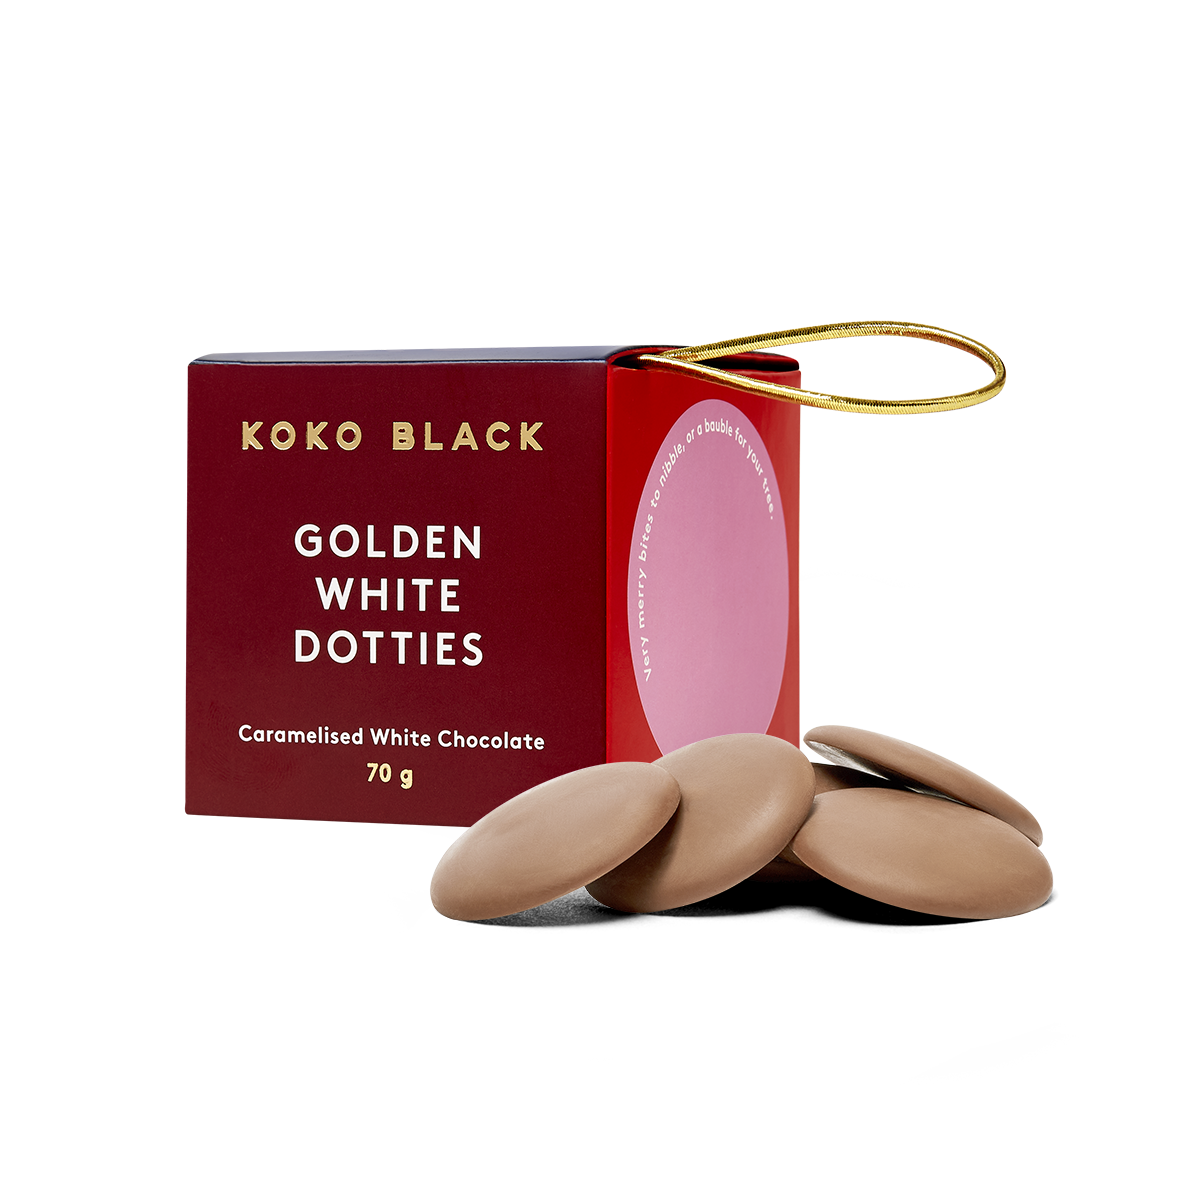 Koko Black Edible Ornaments